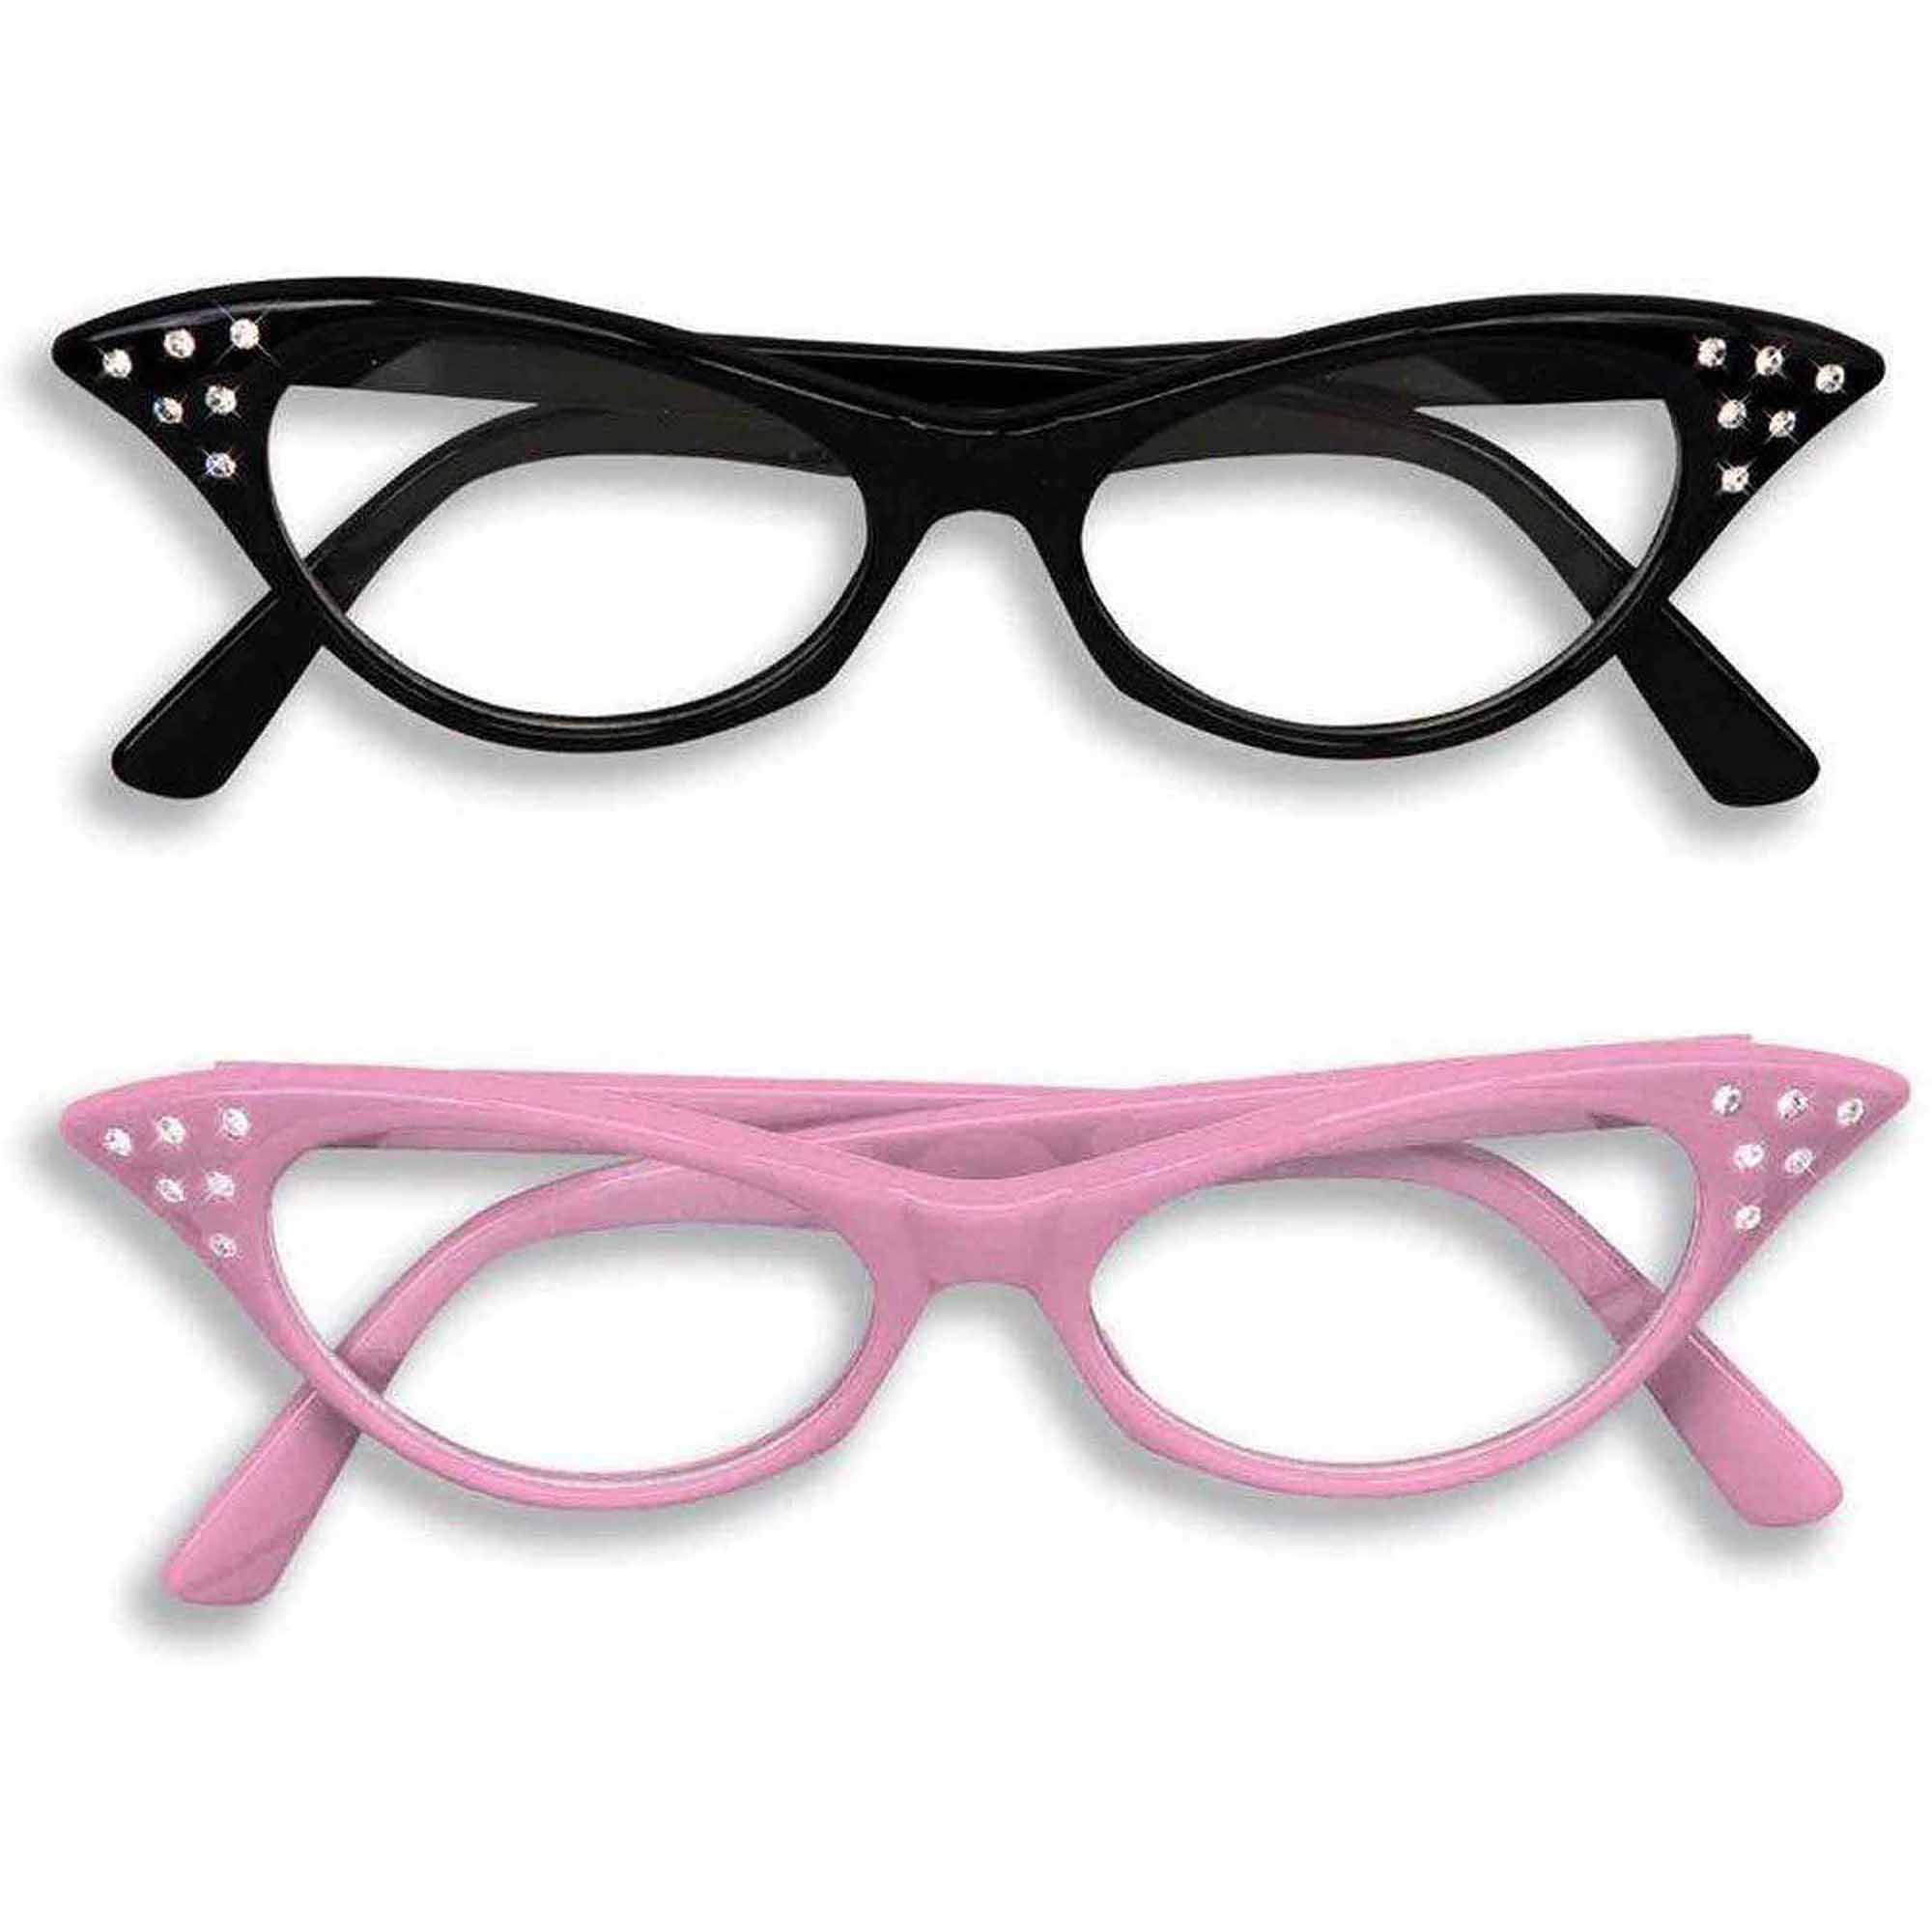 Cat's Eye Glasses Halloween Costume Accessory